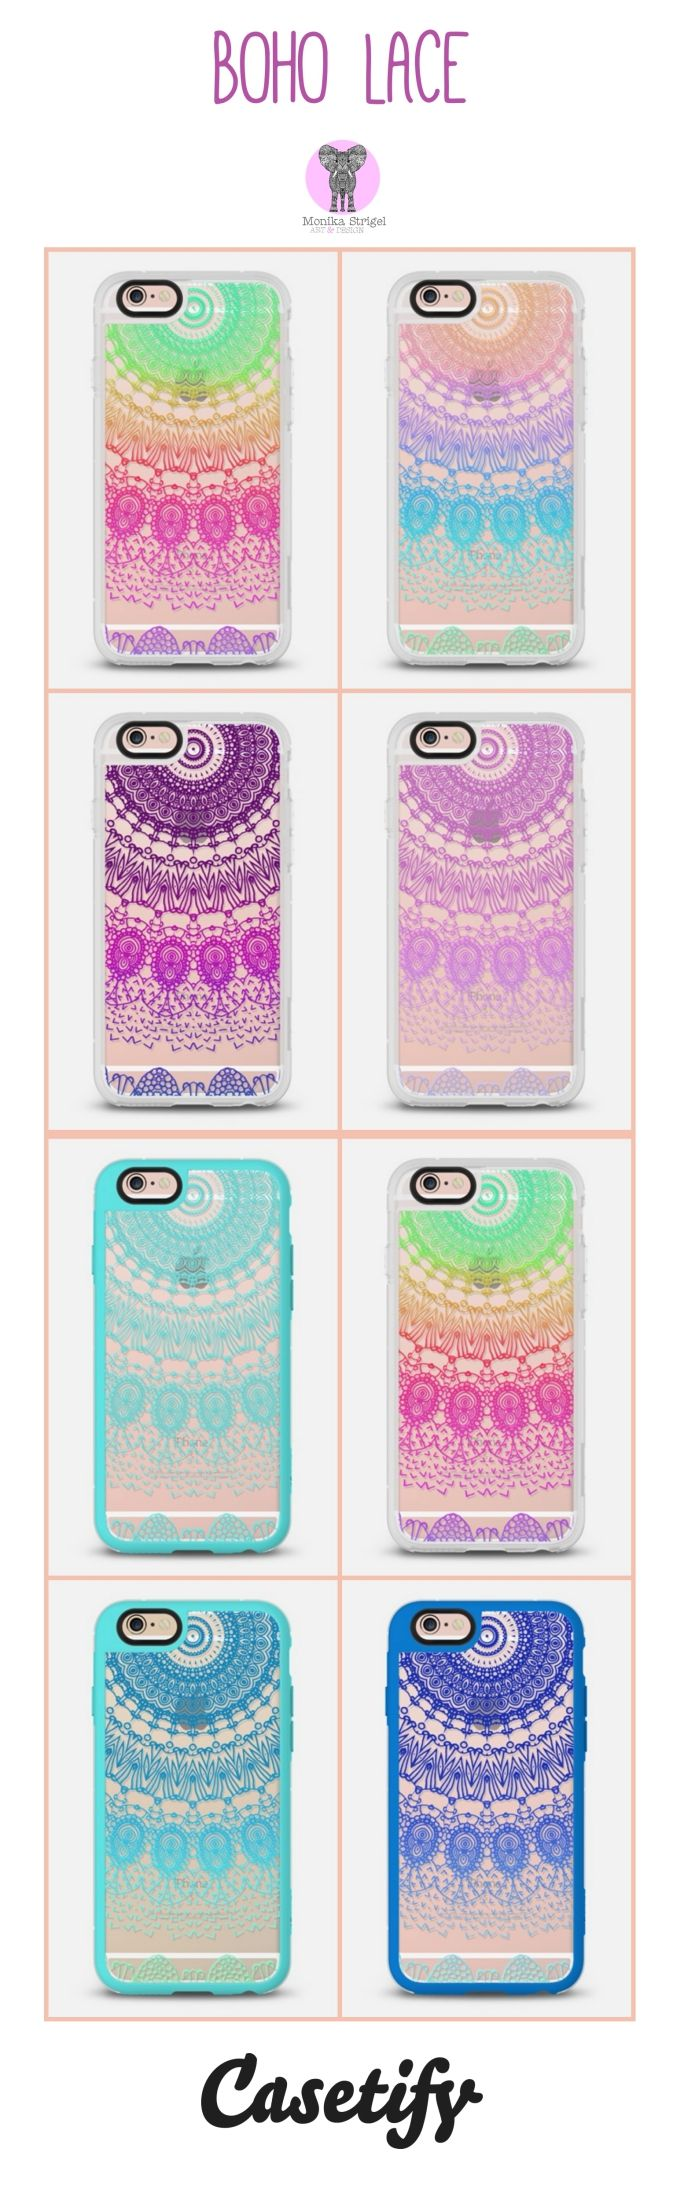 BOHO LACE hand illustrated transparent case by Monika Strigel and Casetify. The case comes for all iPhones and Samsungs! Use the 10 $ off code for your first order and enjoy: qm2i9w Free Shipping worldwide is included!